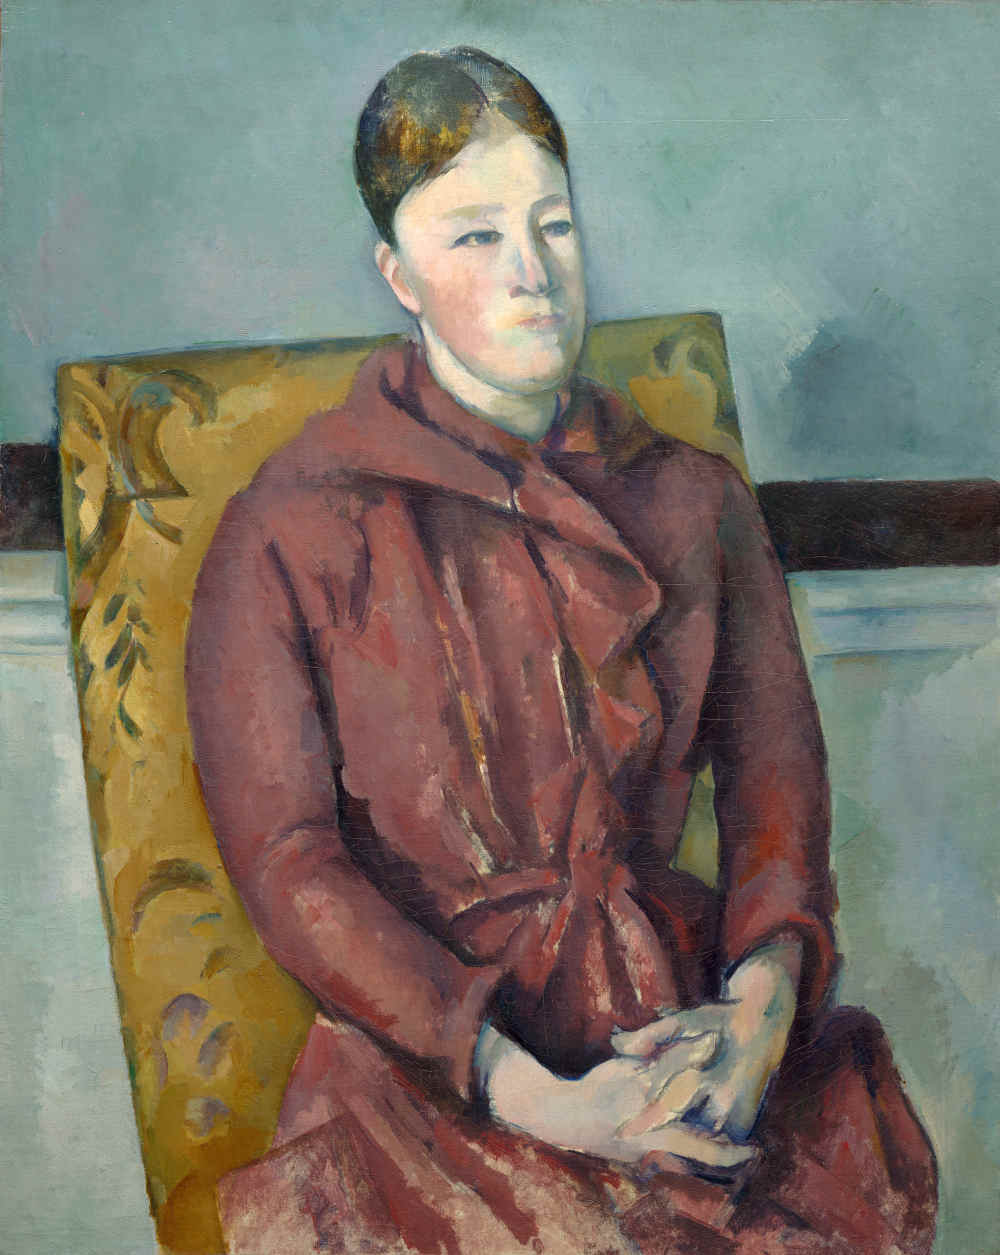 Cezanne portraits, London exhibitions in November, National portrait Gallery